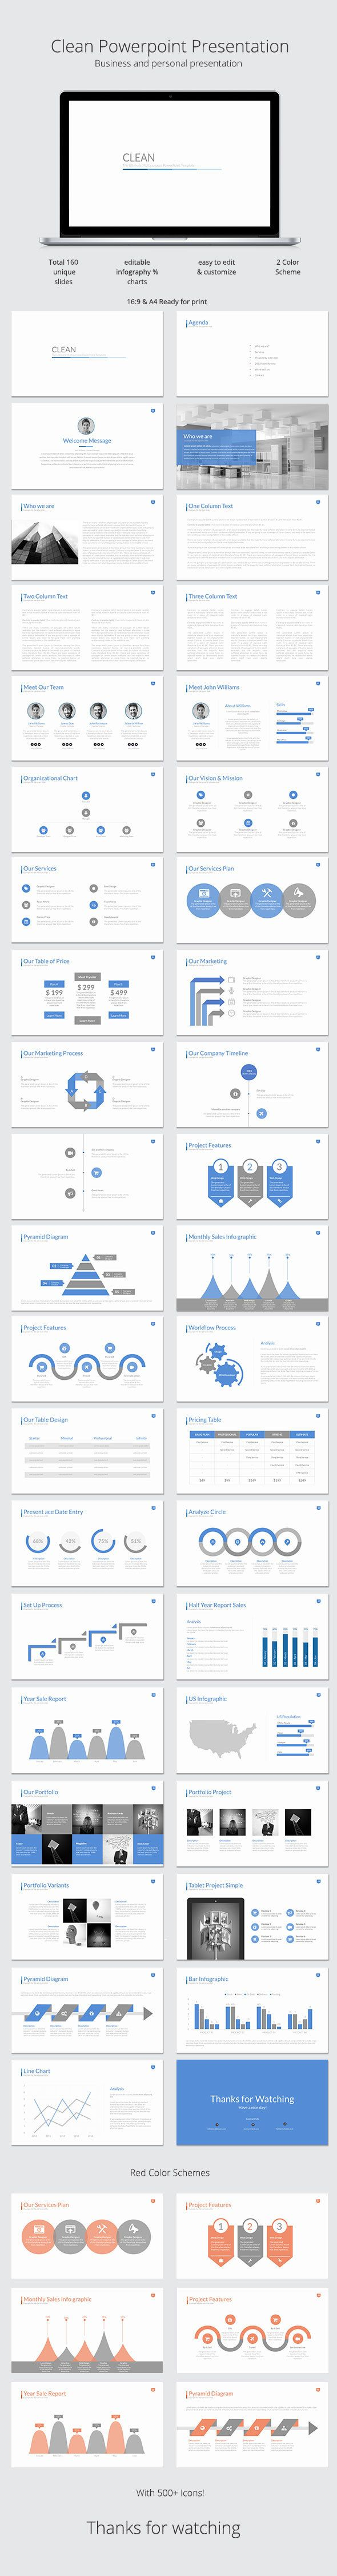 Usdgus  Gorgeous  Ideas About Presentation On Pinterest  Presentation  With Extraordinary Clean Powerpoint Presentation Template Design Slides Download Httpgraphicriver With Adorable Simple Key Loader Powerpoint Also Social Psychology Powerpoint In Addition Nature Powerpoint Templates Free And Number The Stars Powerpoint As Well As Battle Drill  Powerpoint Additionally Free Wedding Powerpoint Templates From Pinterestcom With Usdgus  Extraordinary  Ideas About Presentation On Pinterest  Presentation  With Adorable Clean Powerpoint Presentation Template Design Slides Download Httpgraphicriver And Gorgeous Simple Key Loader Powerpoint Also Social Psychology Powerpoint In Addition Nature Powerpoint Templates Free From Pinterestcom